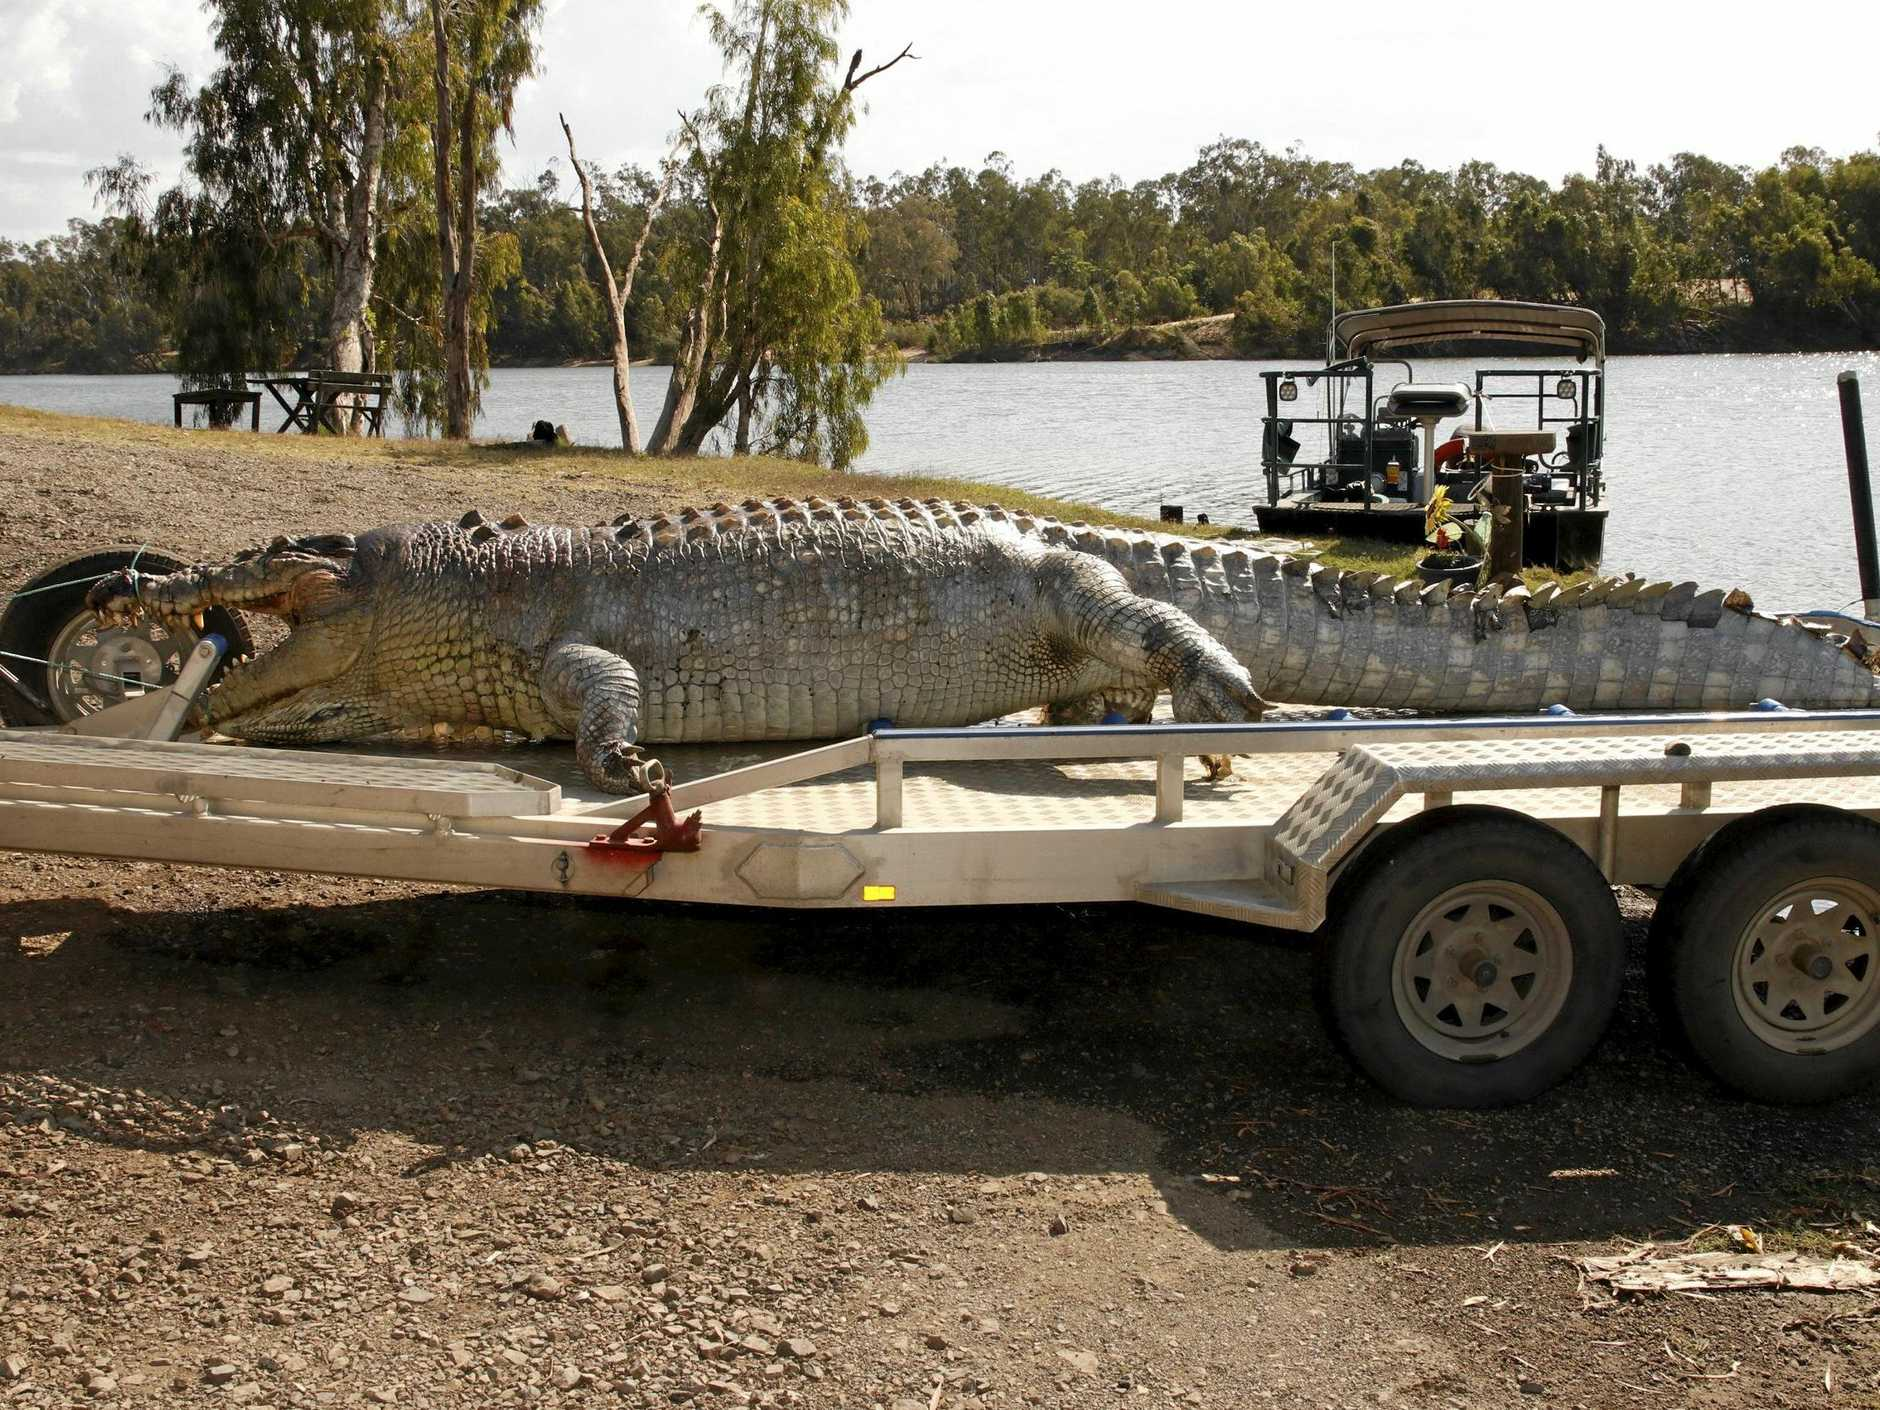 Police and officers from the Department of Environment and Heritage Protection are  investigating the shooting of an iconic 5.2m crocodile near Etna Creek north of Rockhampton.